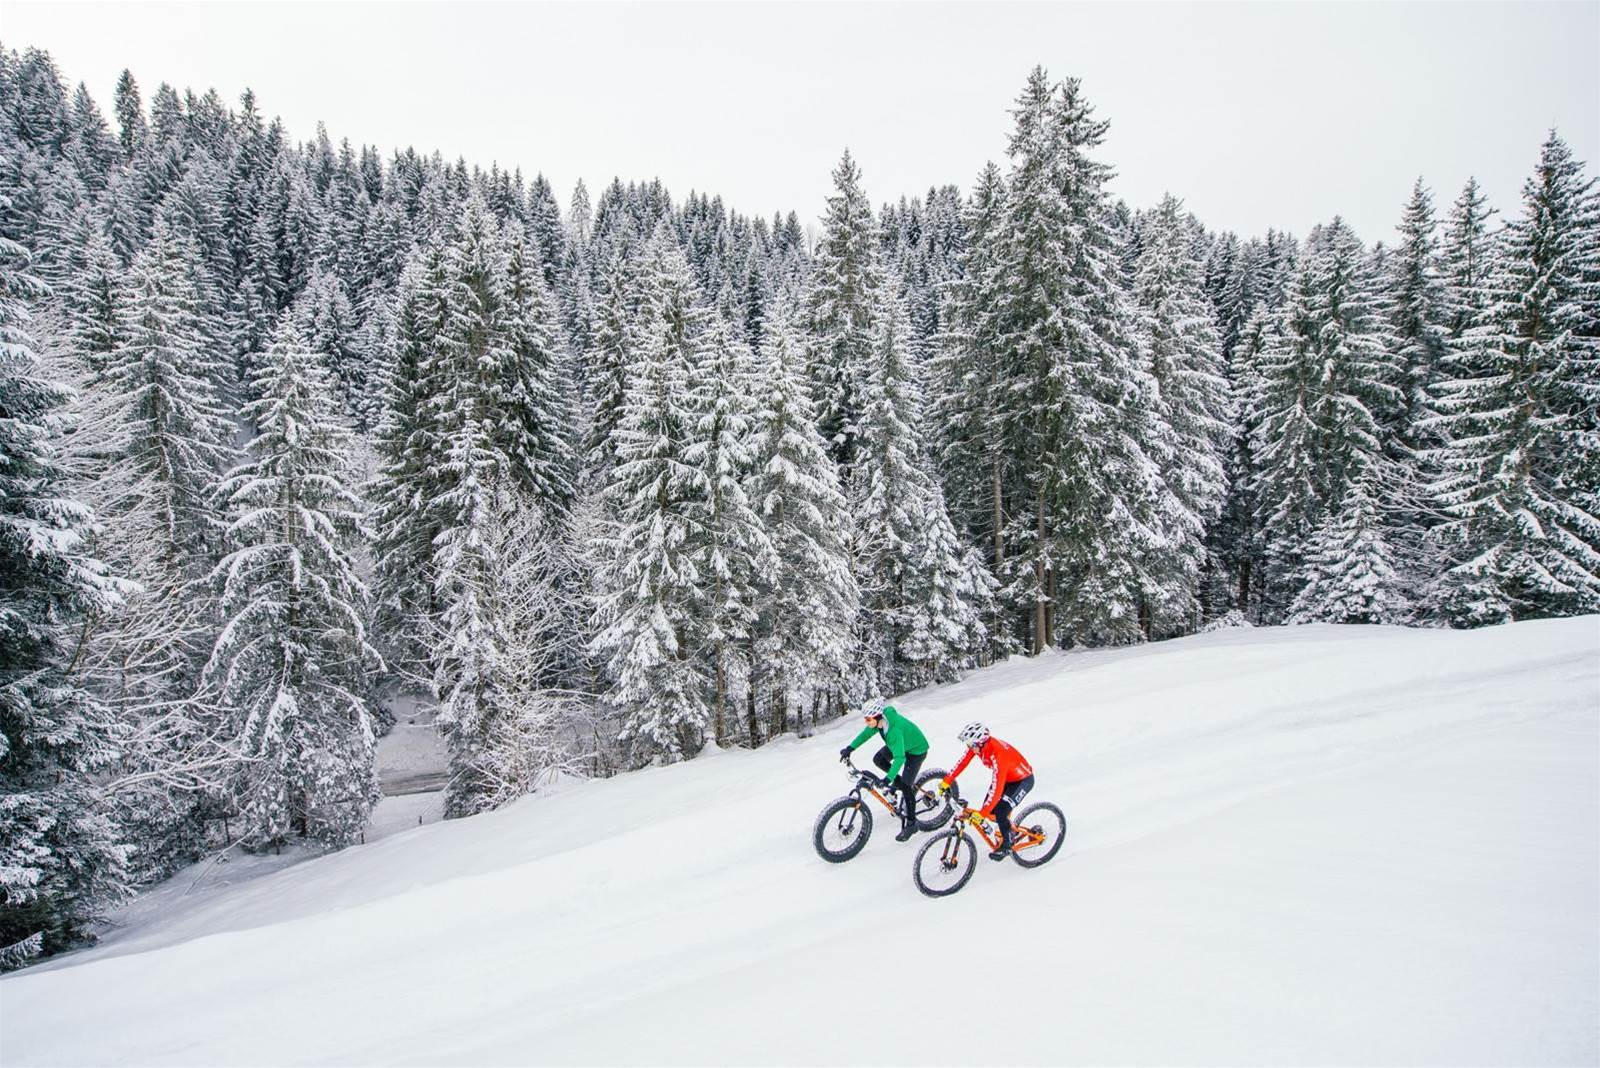 7 things I learnt riding in snow